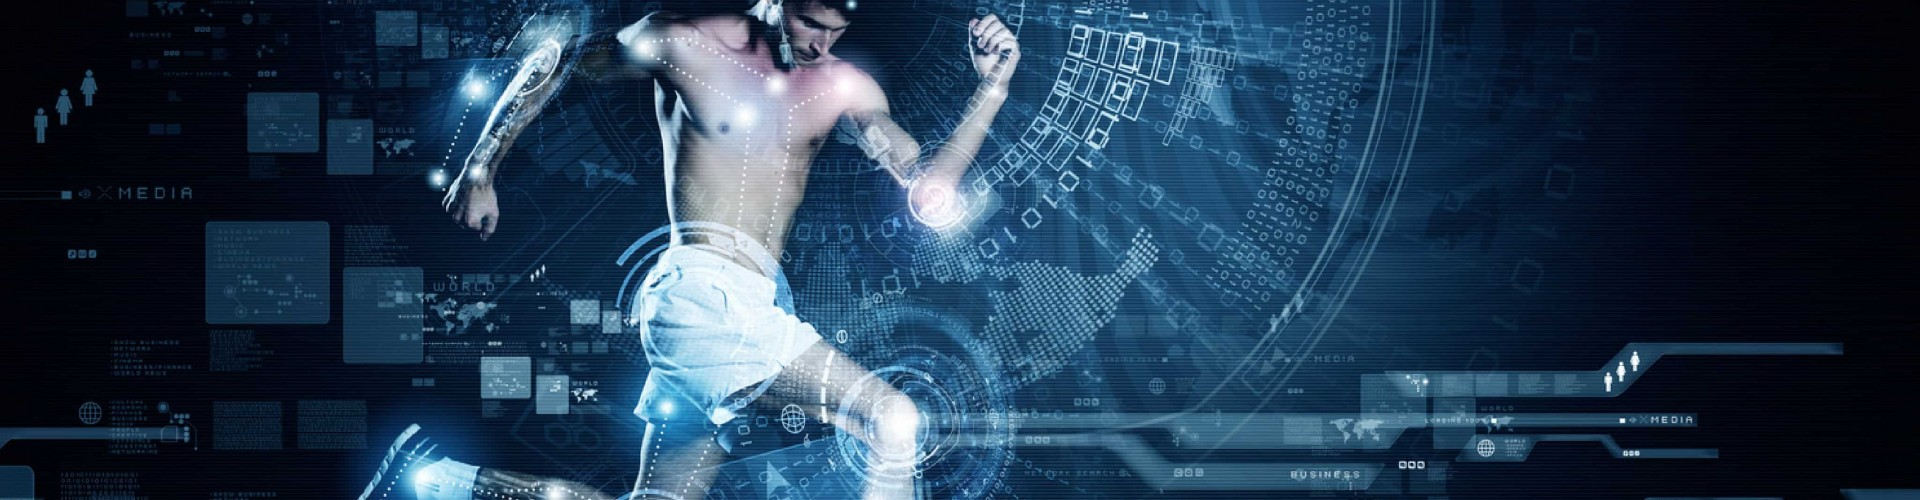 Implementation of IoT in sports